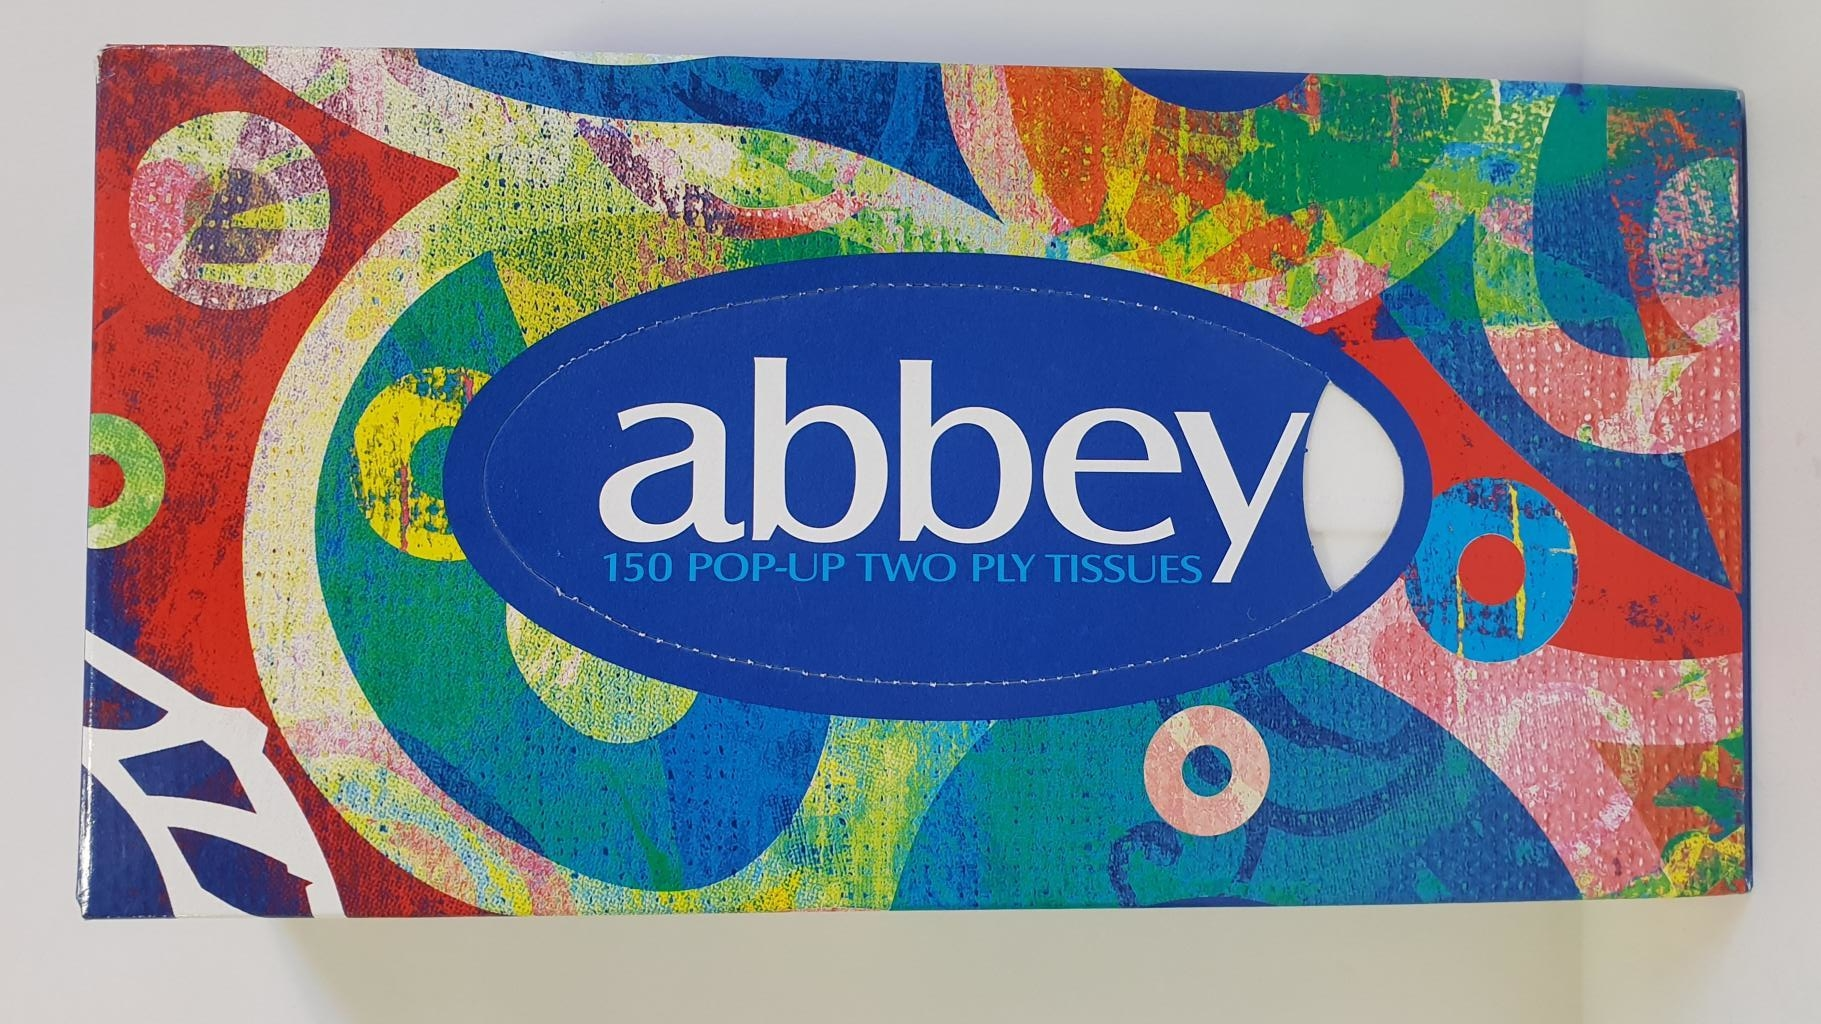 ABBEY POP UP 2 PLY TISSUES 150